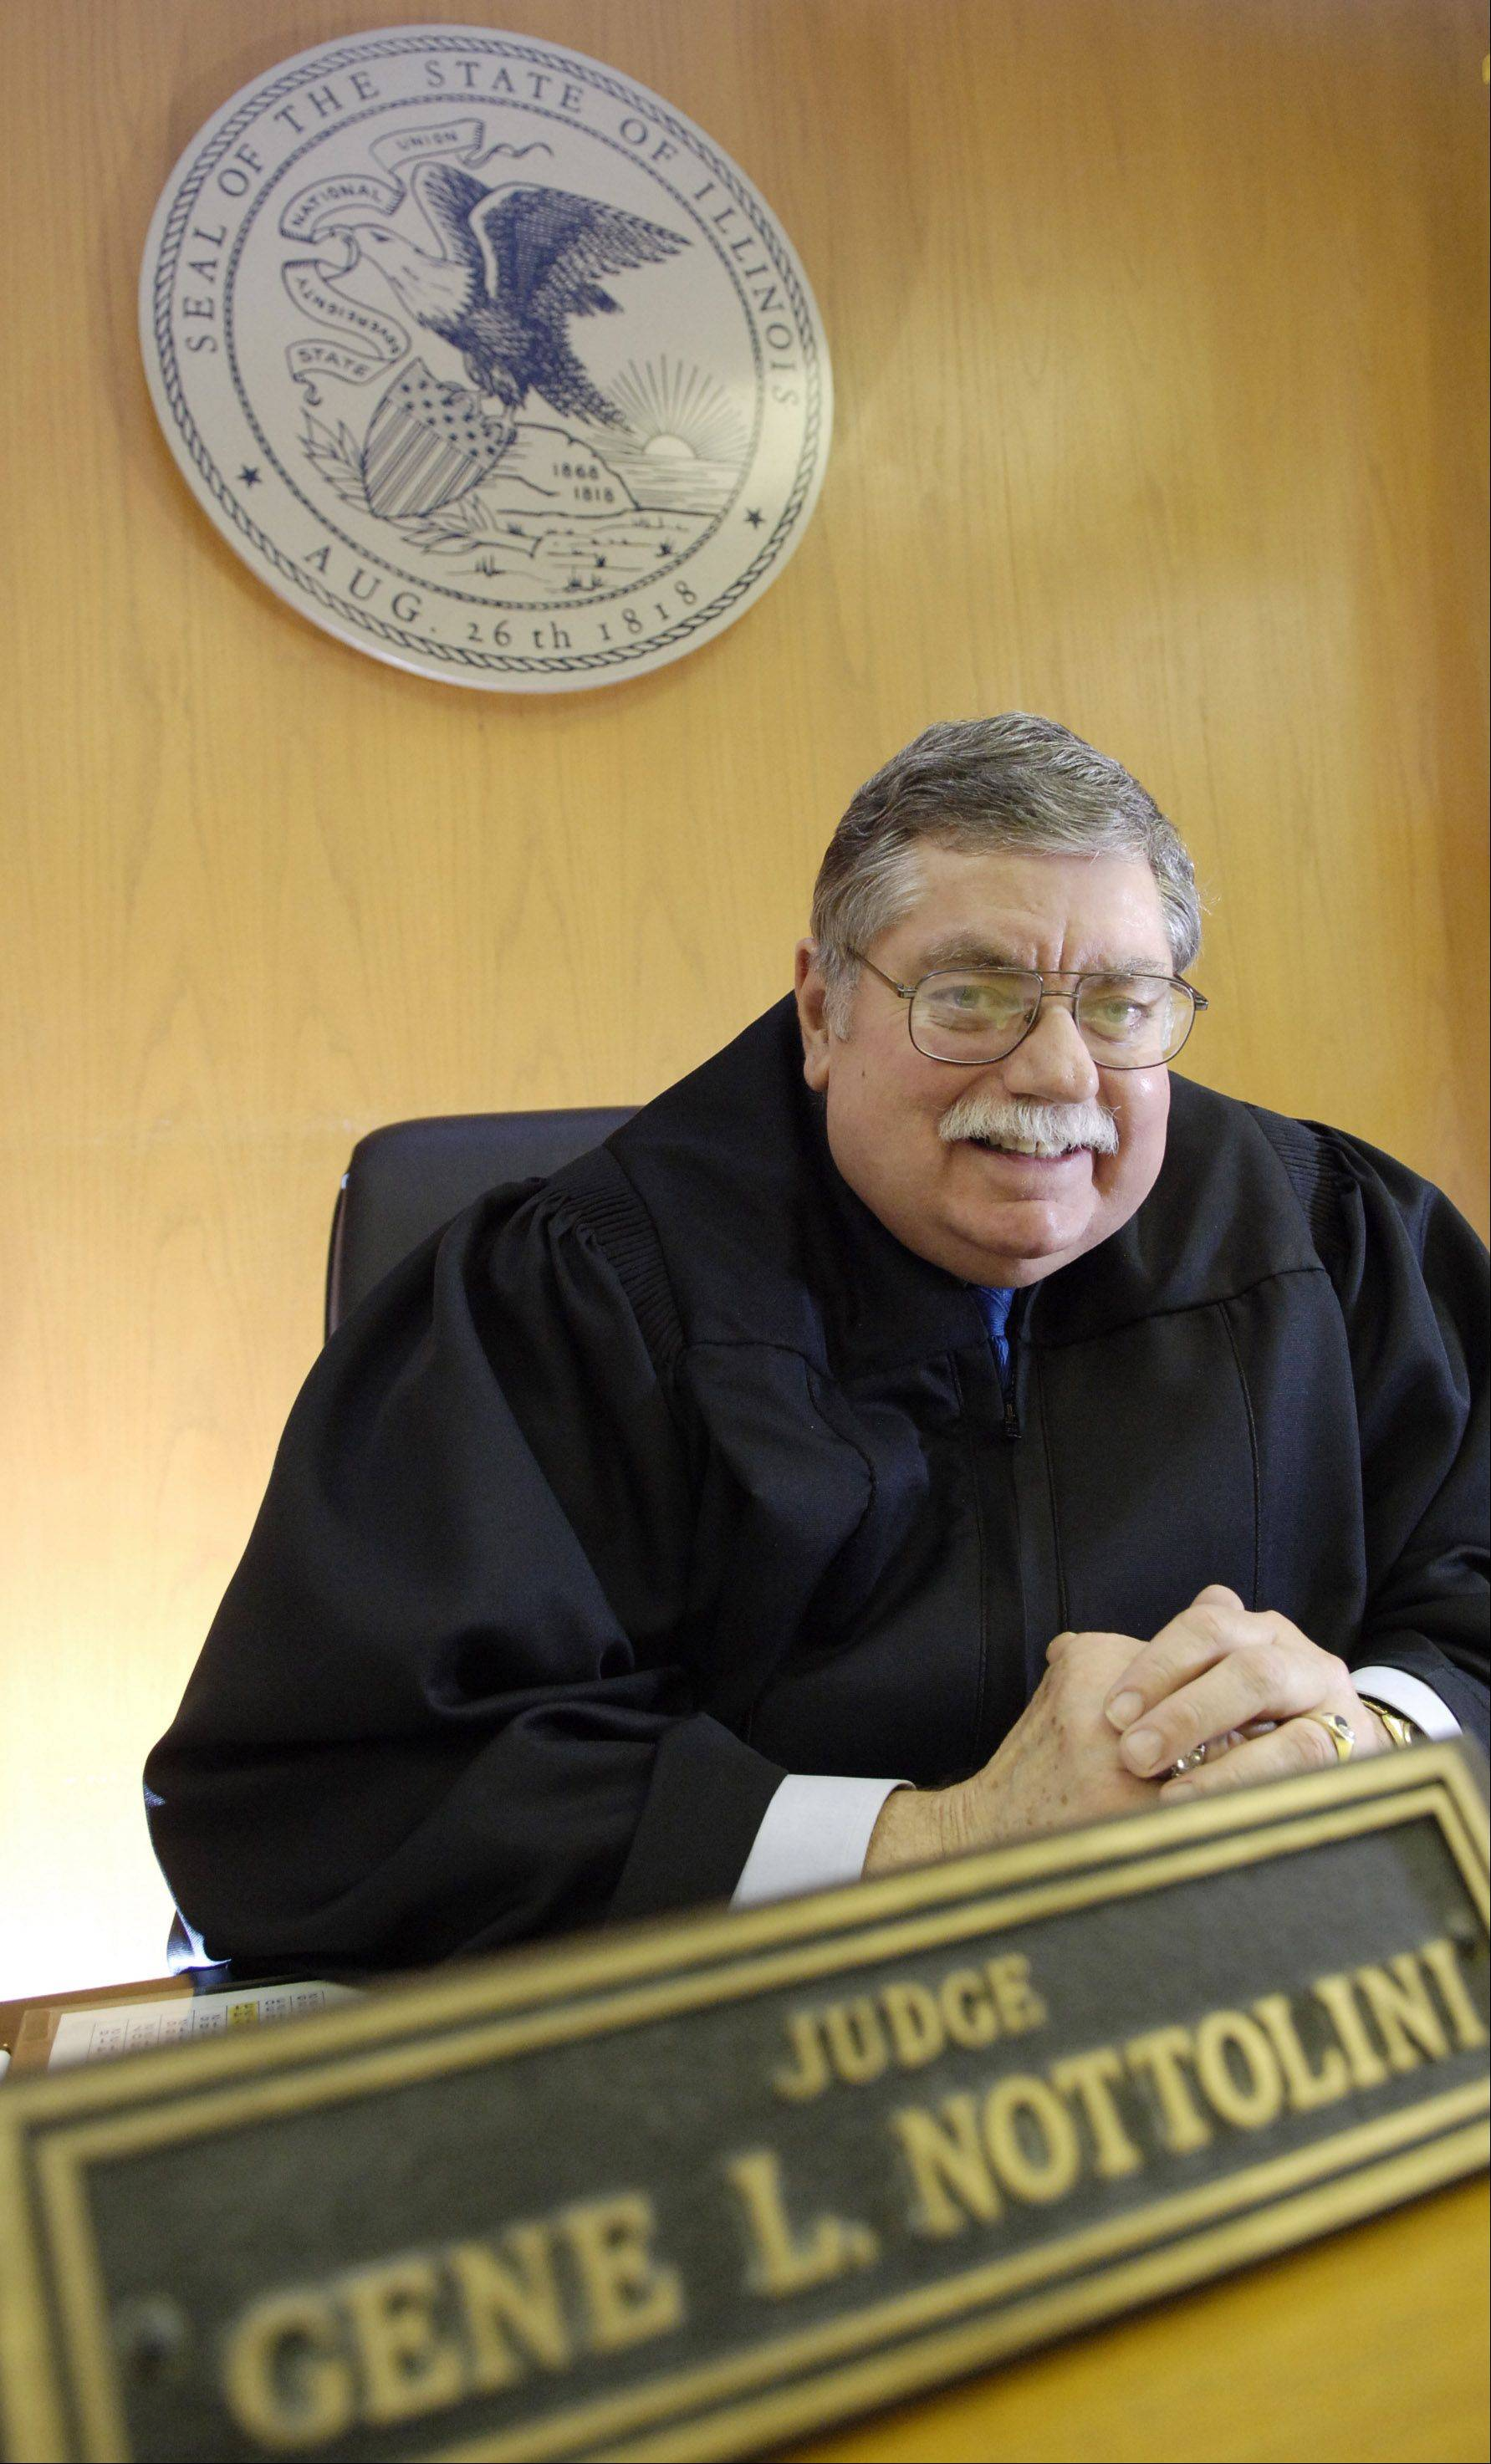 Gene Nottolini served as a Kane County judge from 1989 to 2005, including a stint as chief judge from 1993 to 1996. Here is shown in November 2005, just before his retirement.